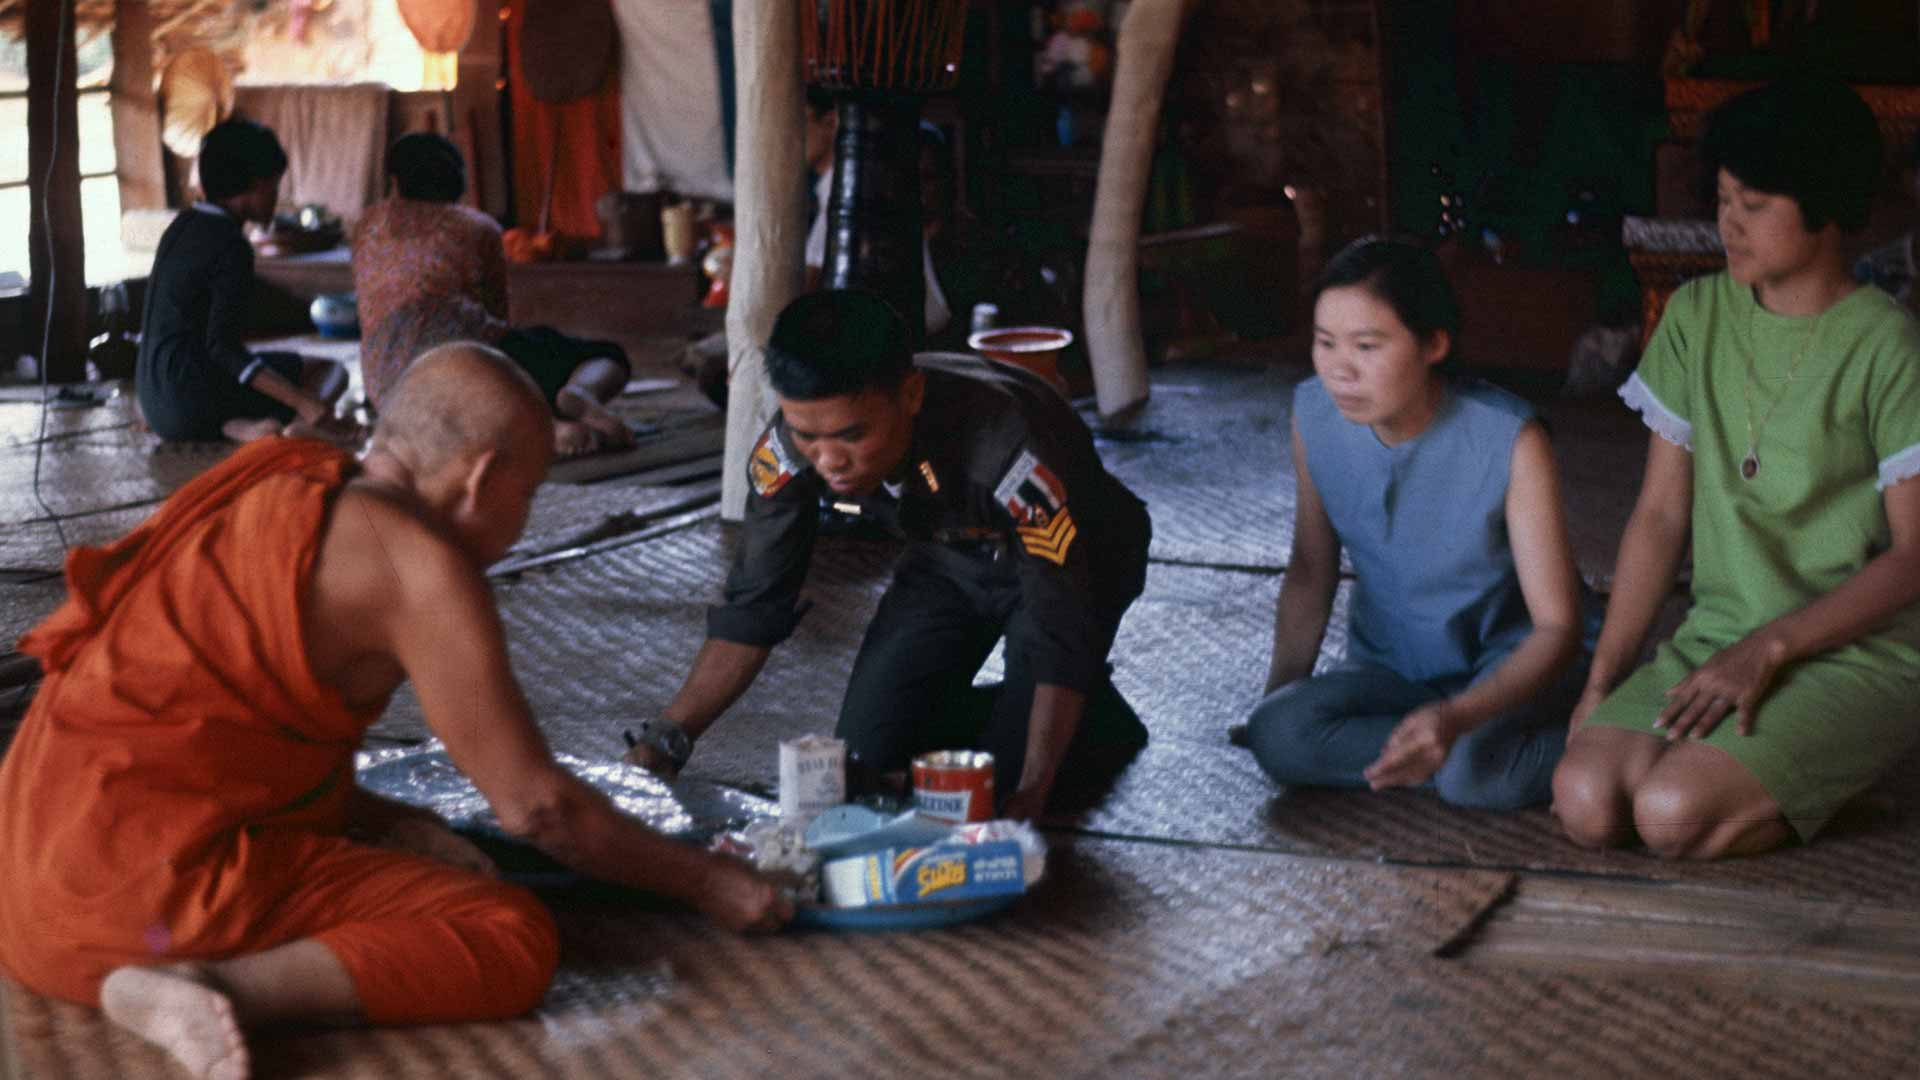 A man in a military uniform pushes a tray of gifts across the floor to a monk